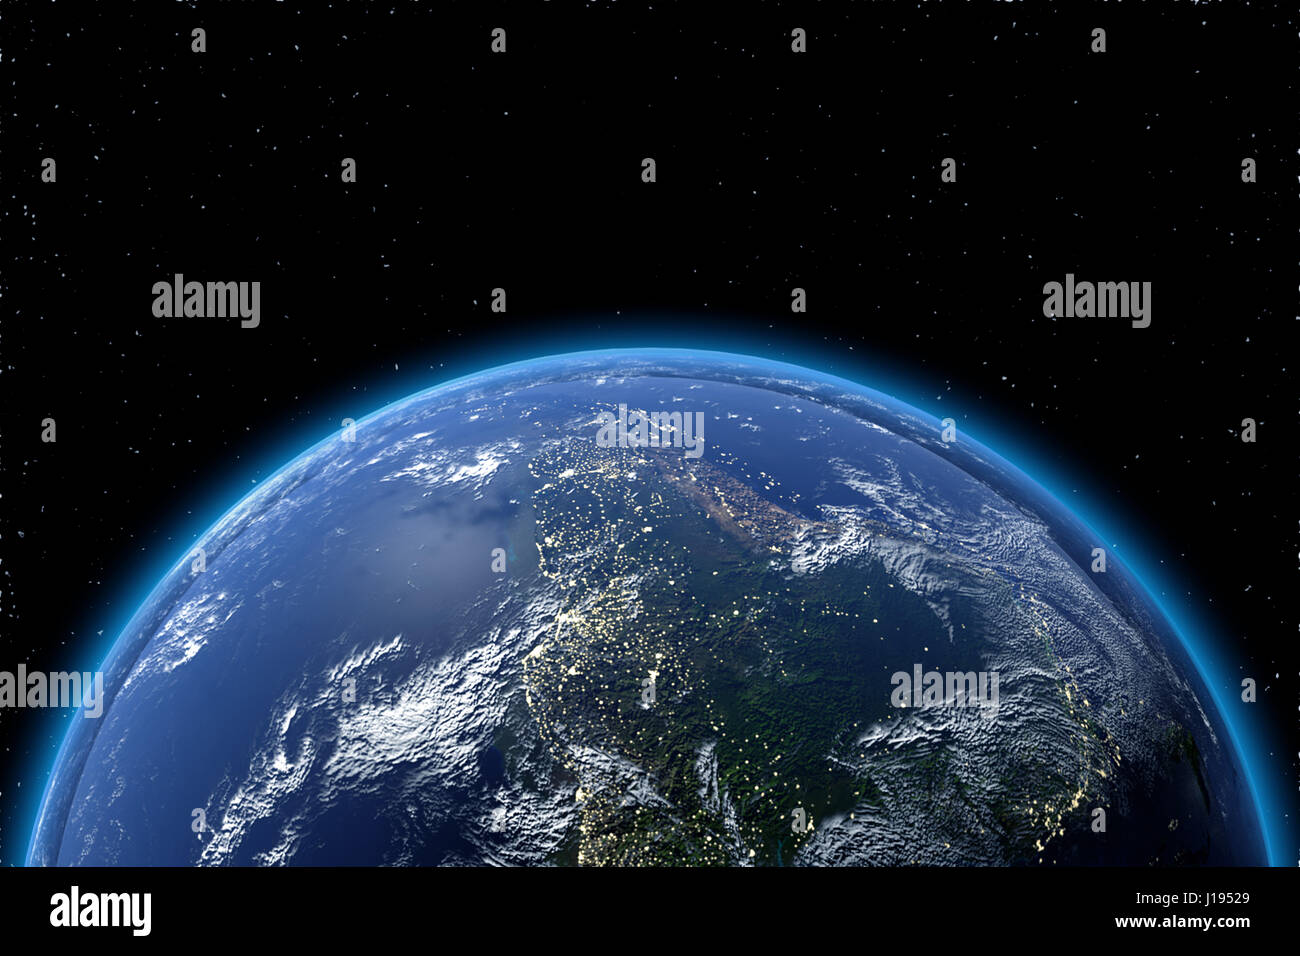 View of planet earth from space in 3D. Elements of this image furnished by NASA - Stock Image